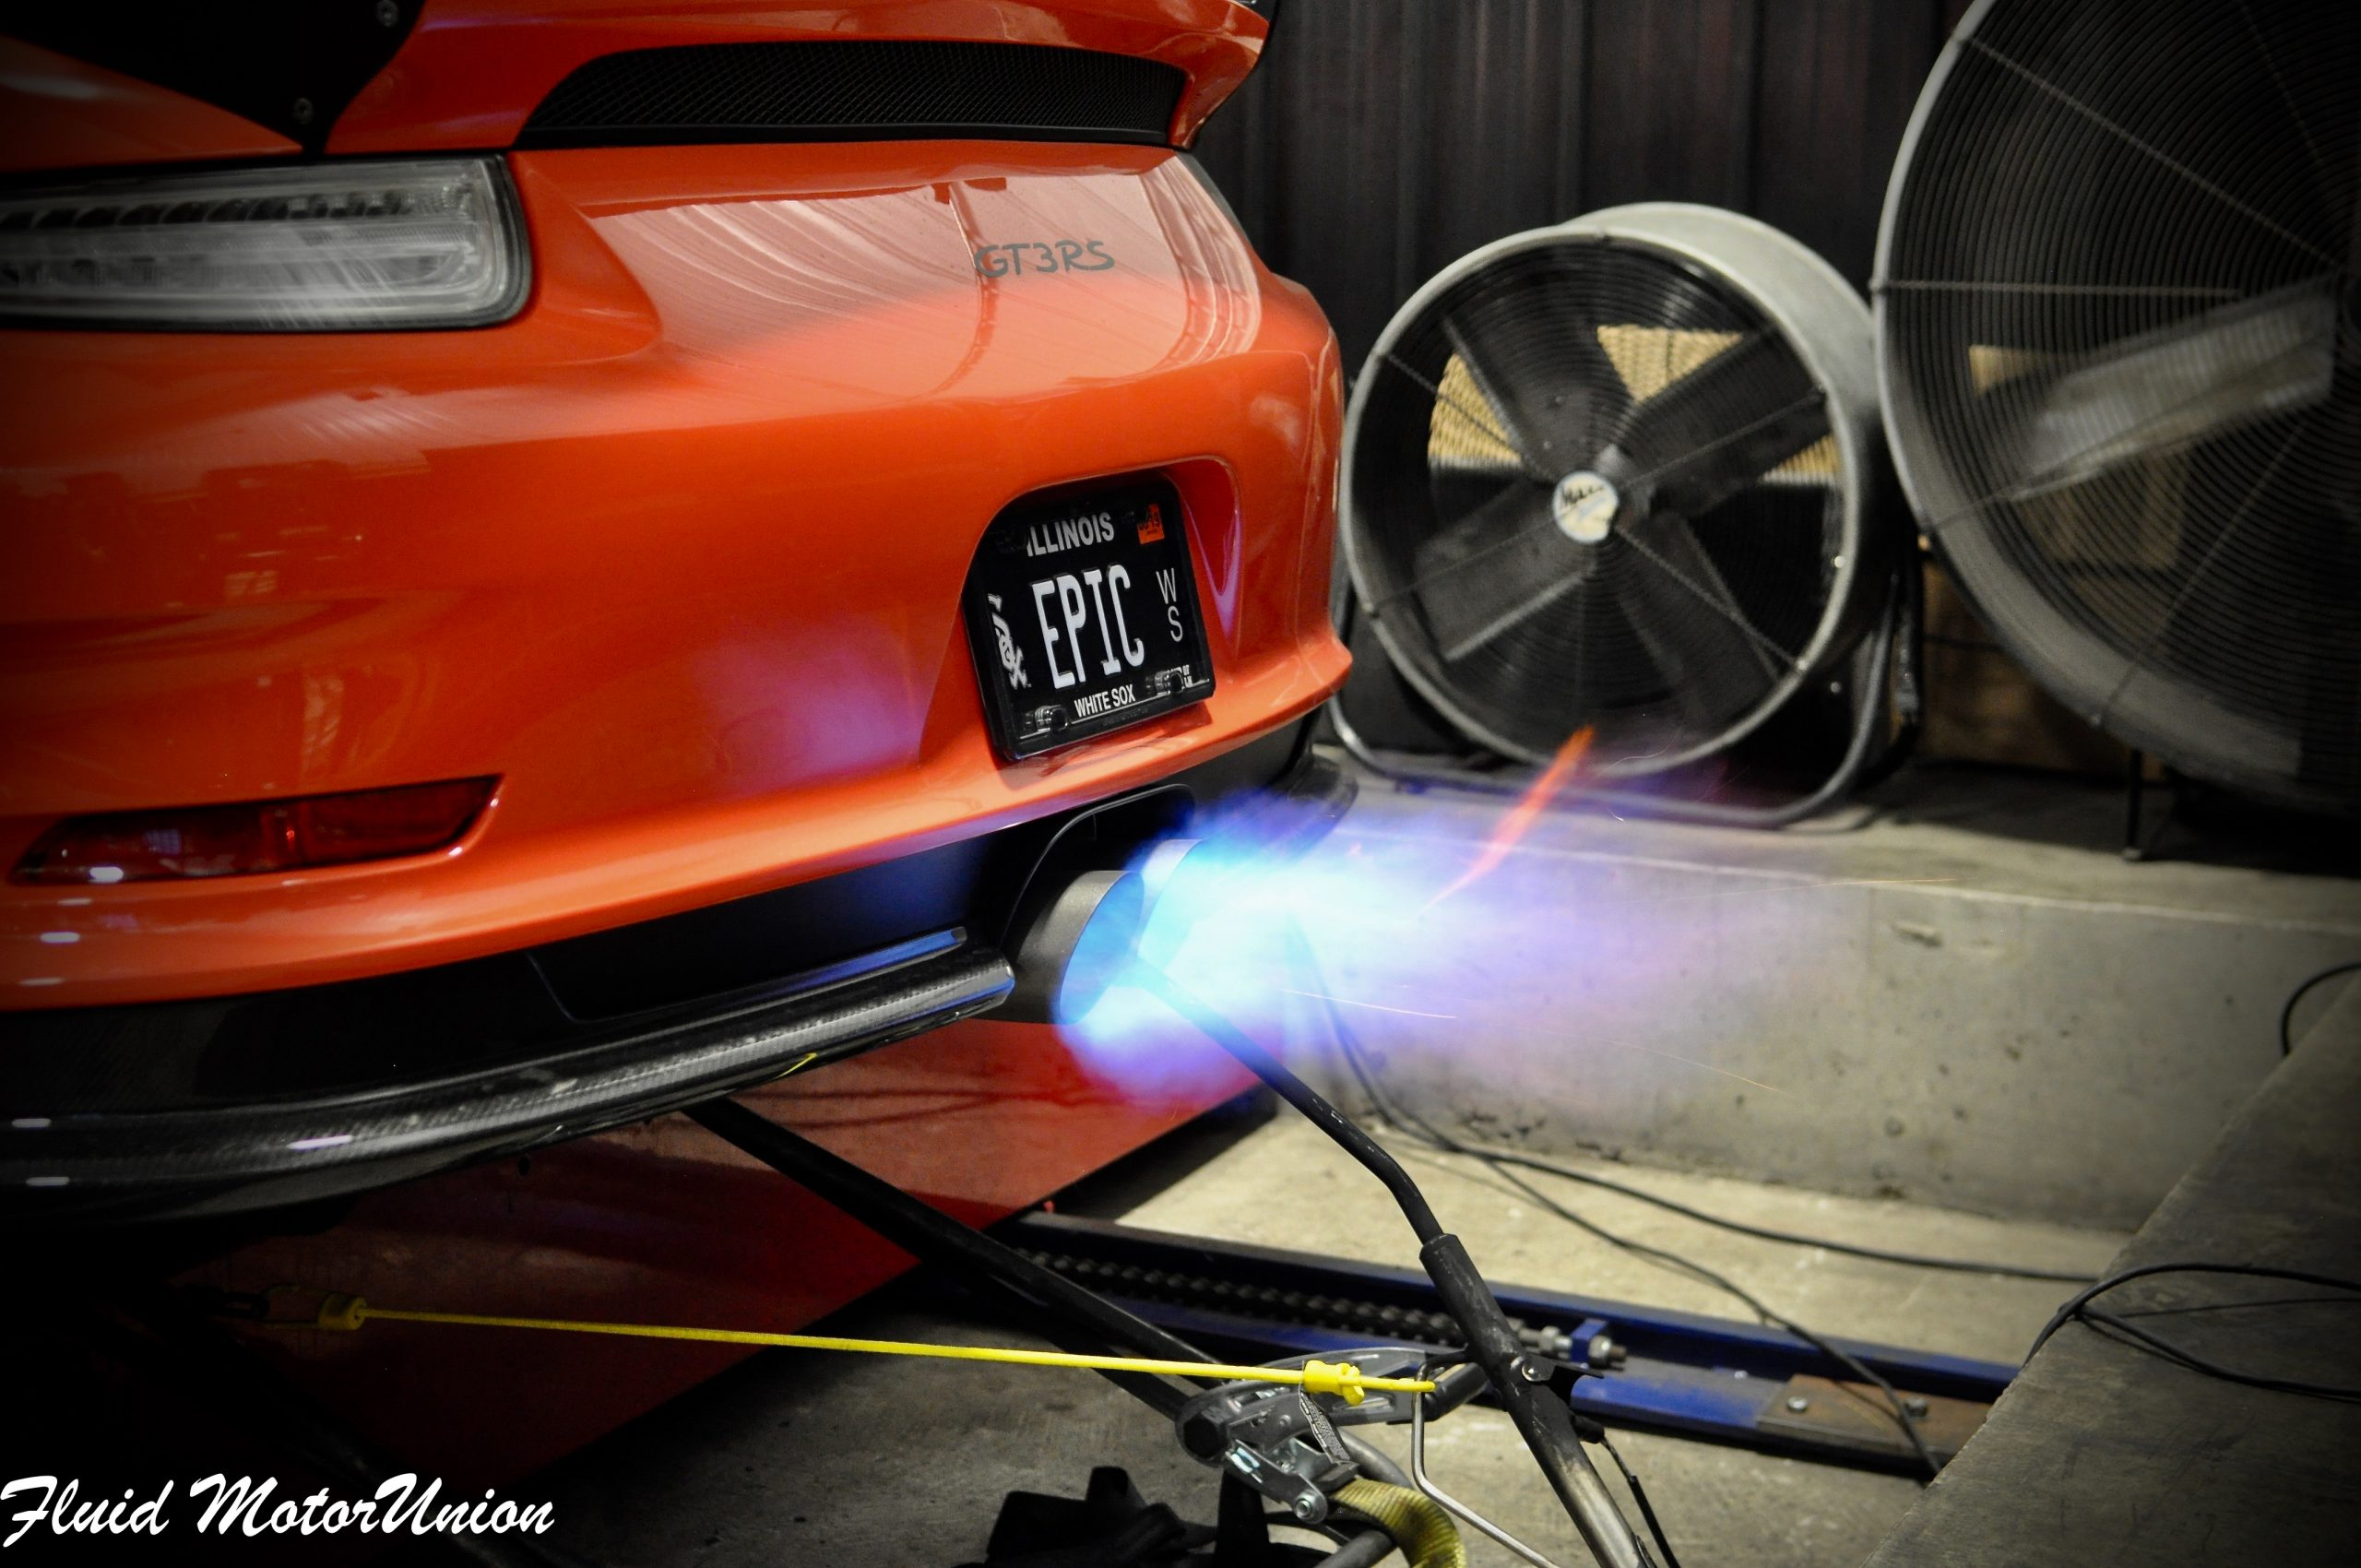 GT3RS Fireball